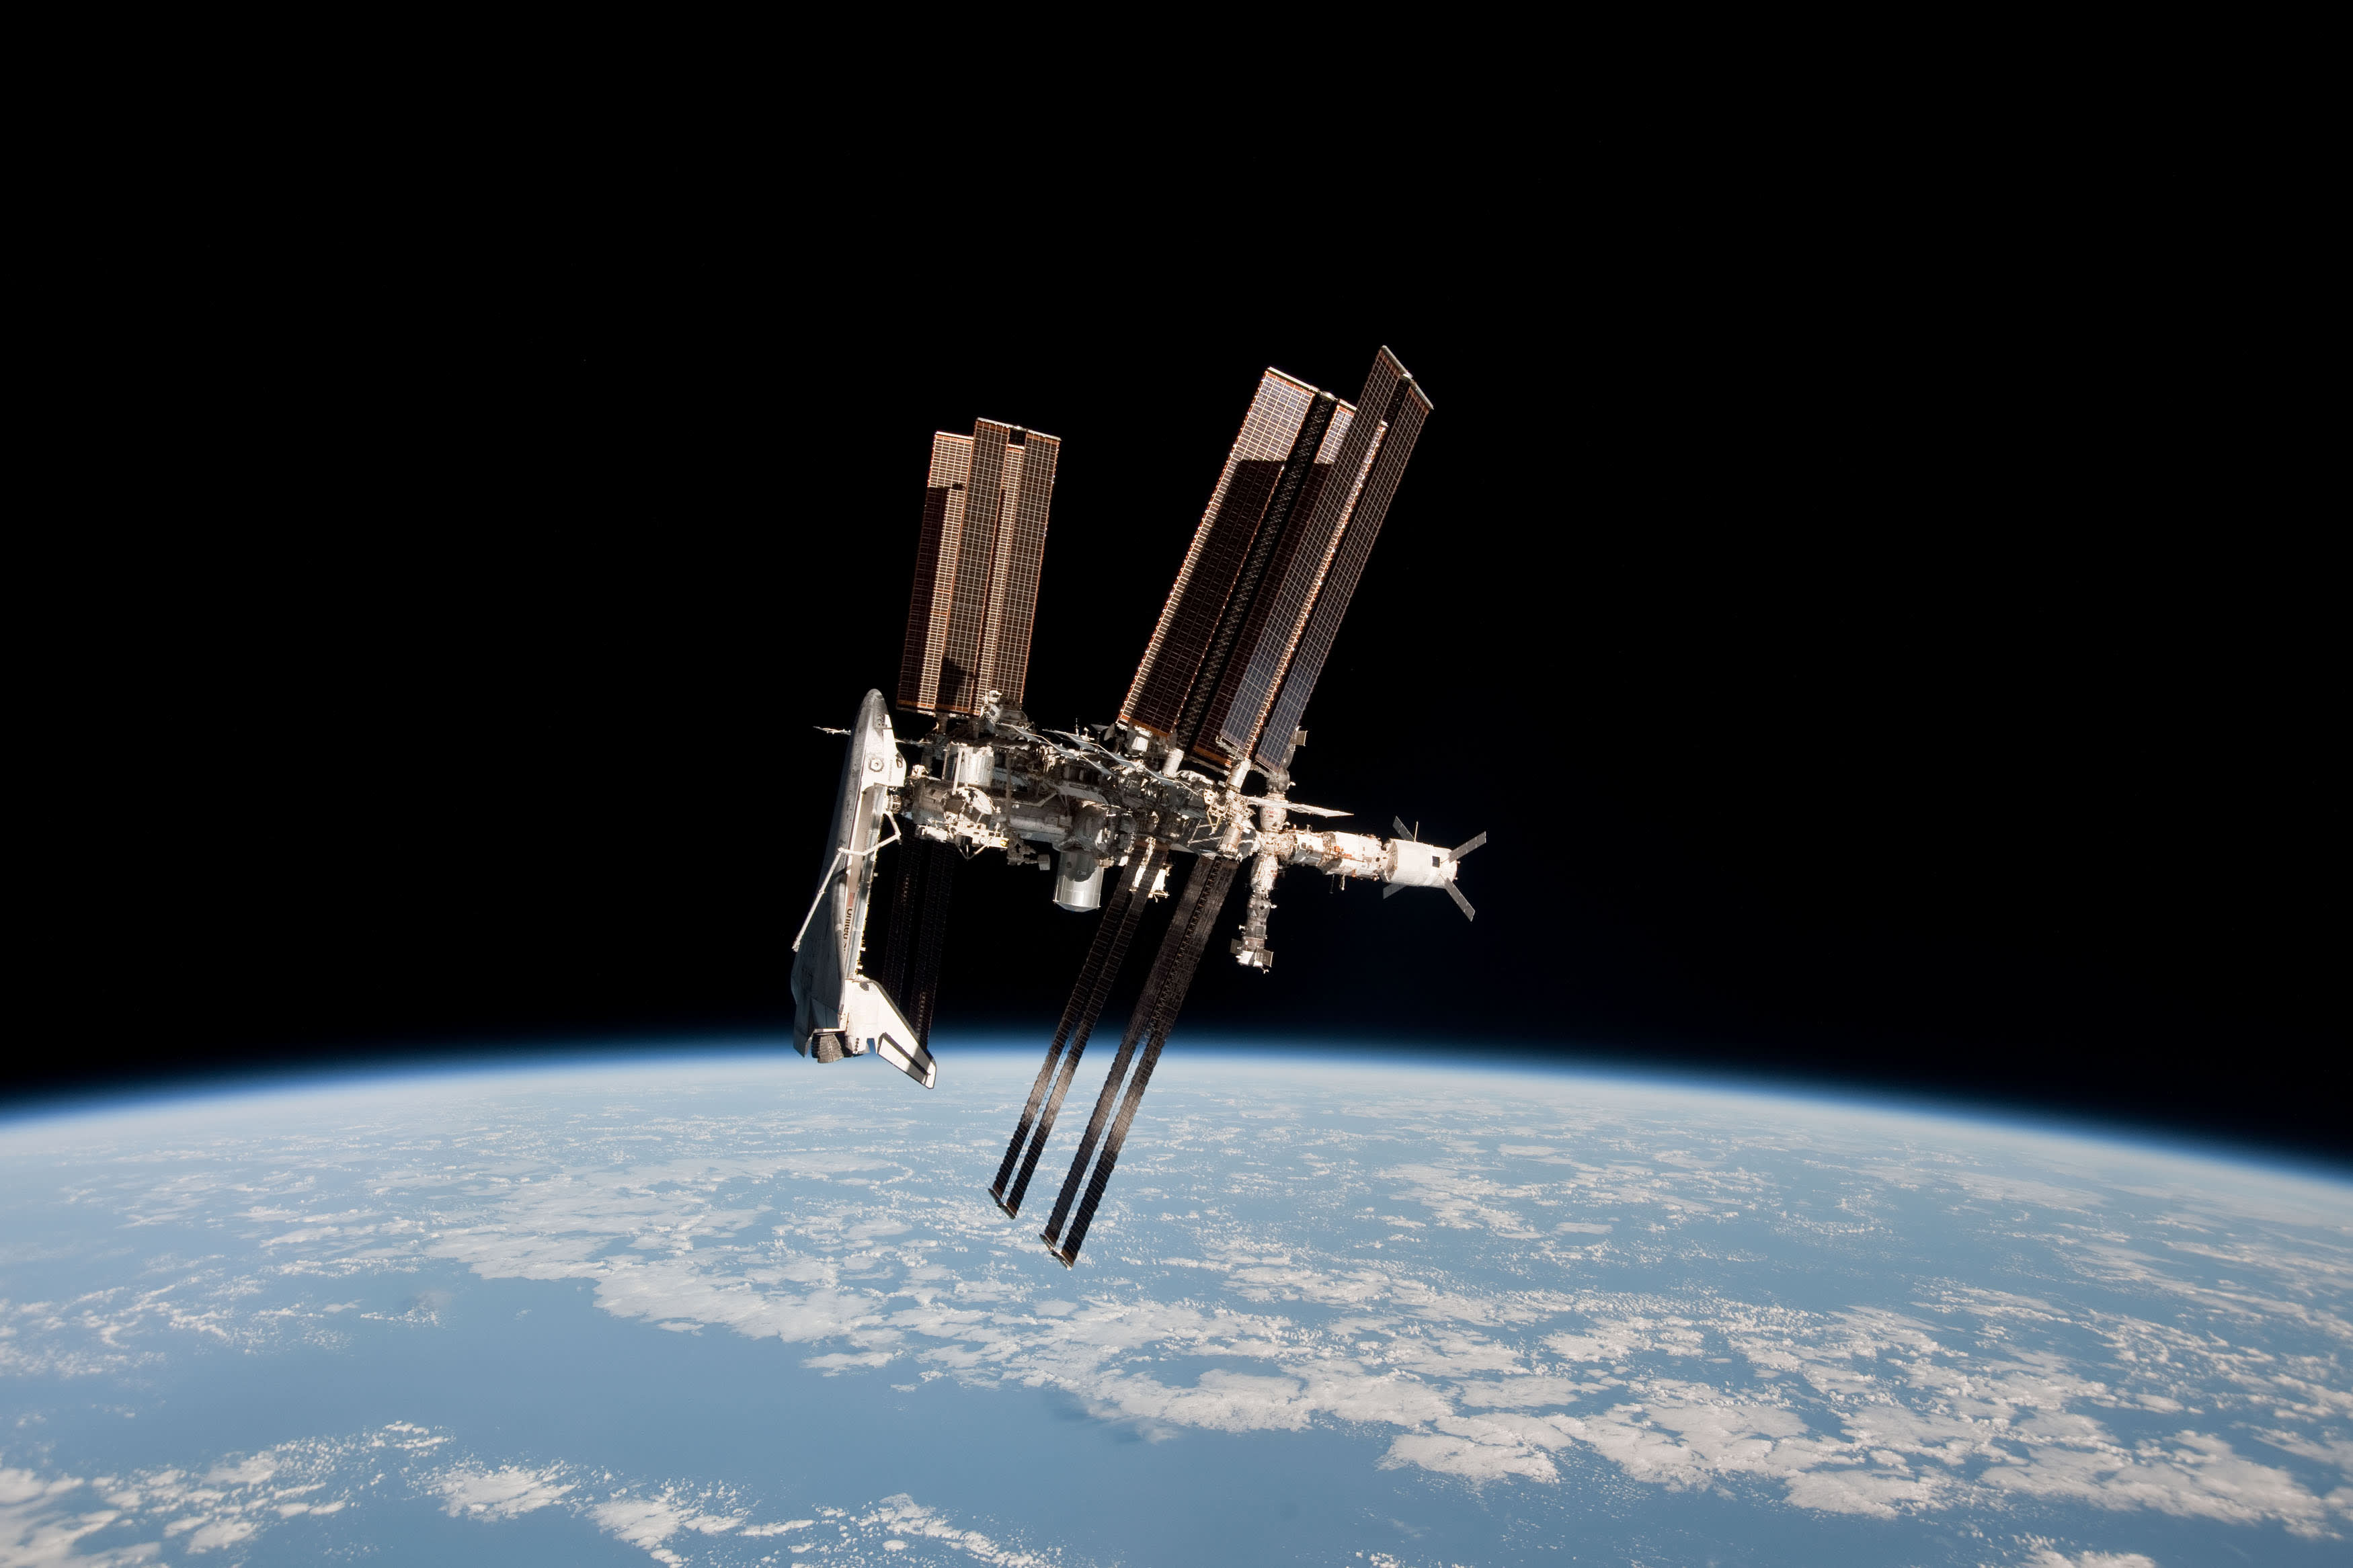 In this handout image provided by the European Space Agency (ESA) and NASA, the International Space Station and the docked space shuttle Endeavour orbit Earth during Endeavour's final sortie in space.